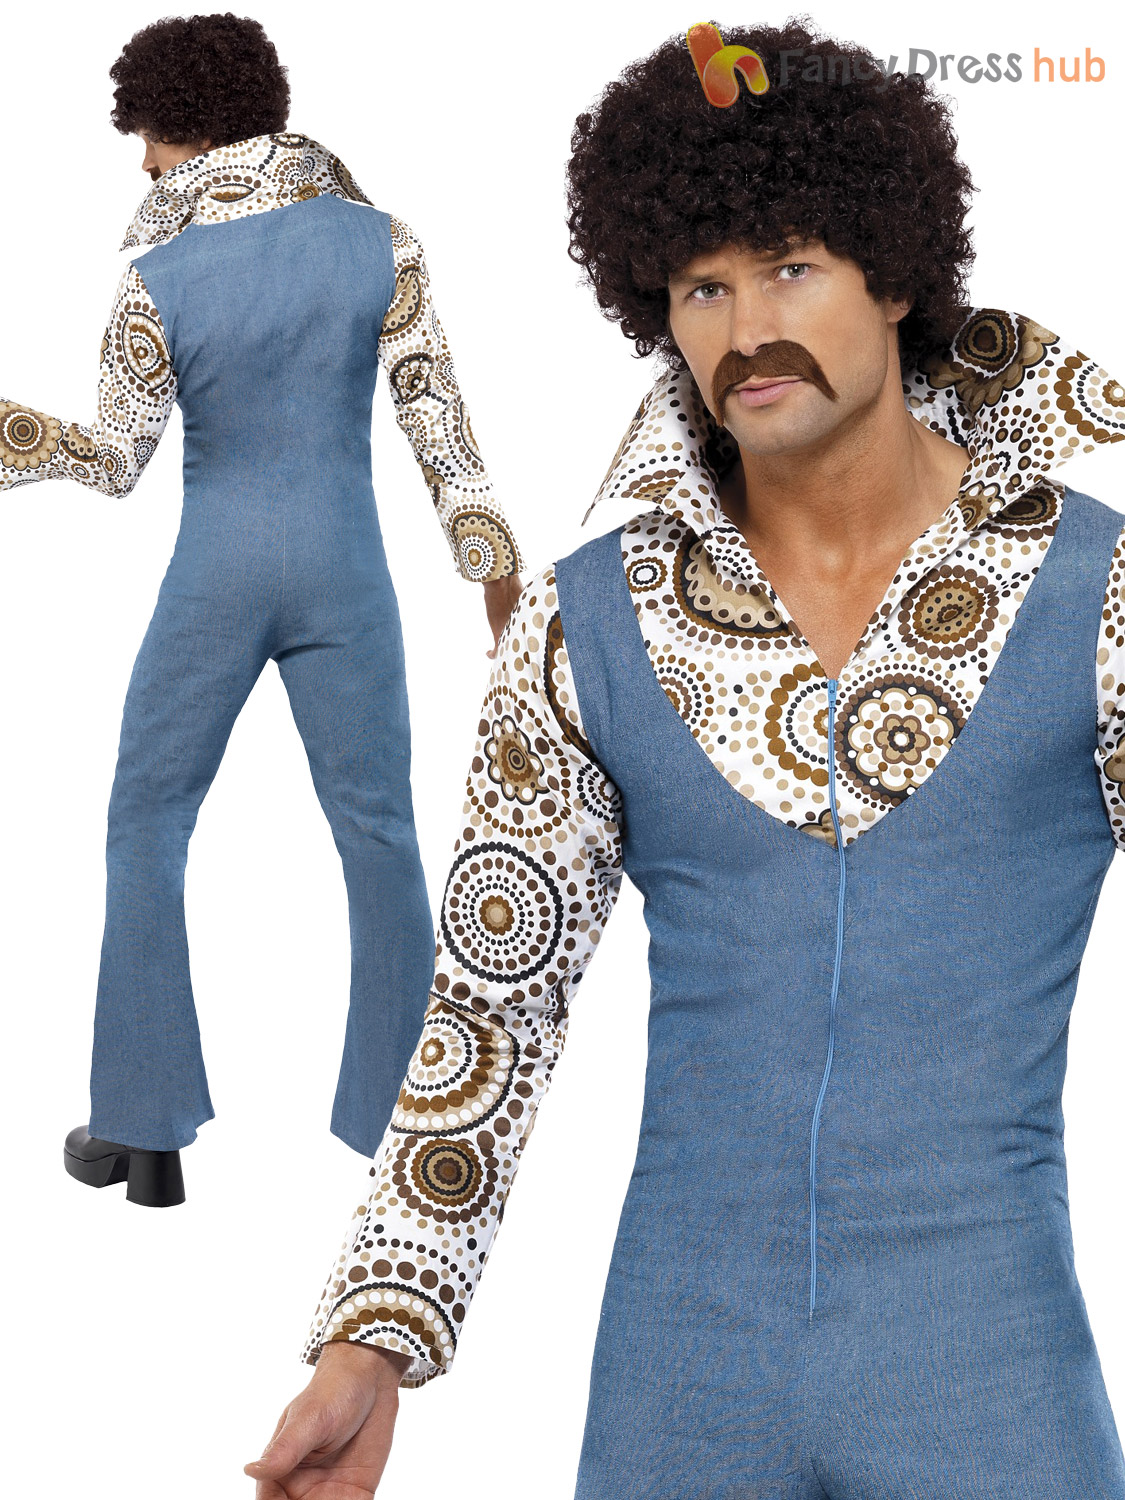 Mens Groovy Hippy Hippie Disco Costume Adult 60s 70s 1970s Fancy Dress Outfit Ebay